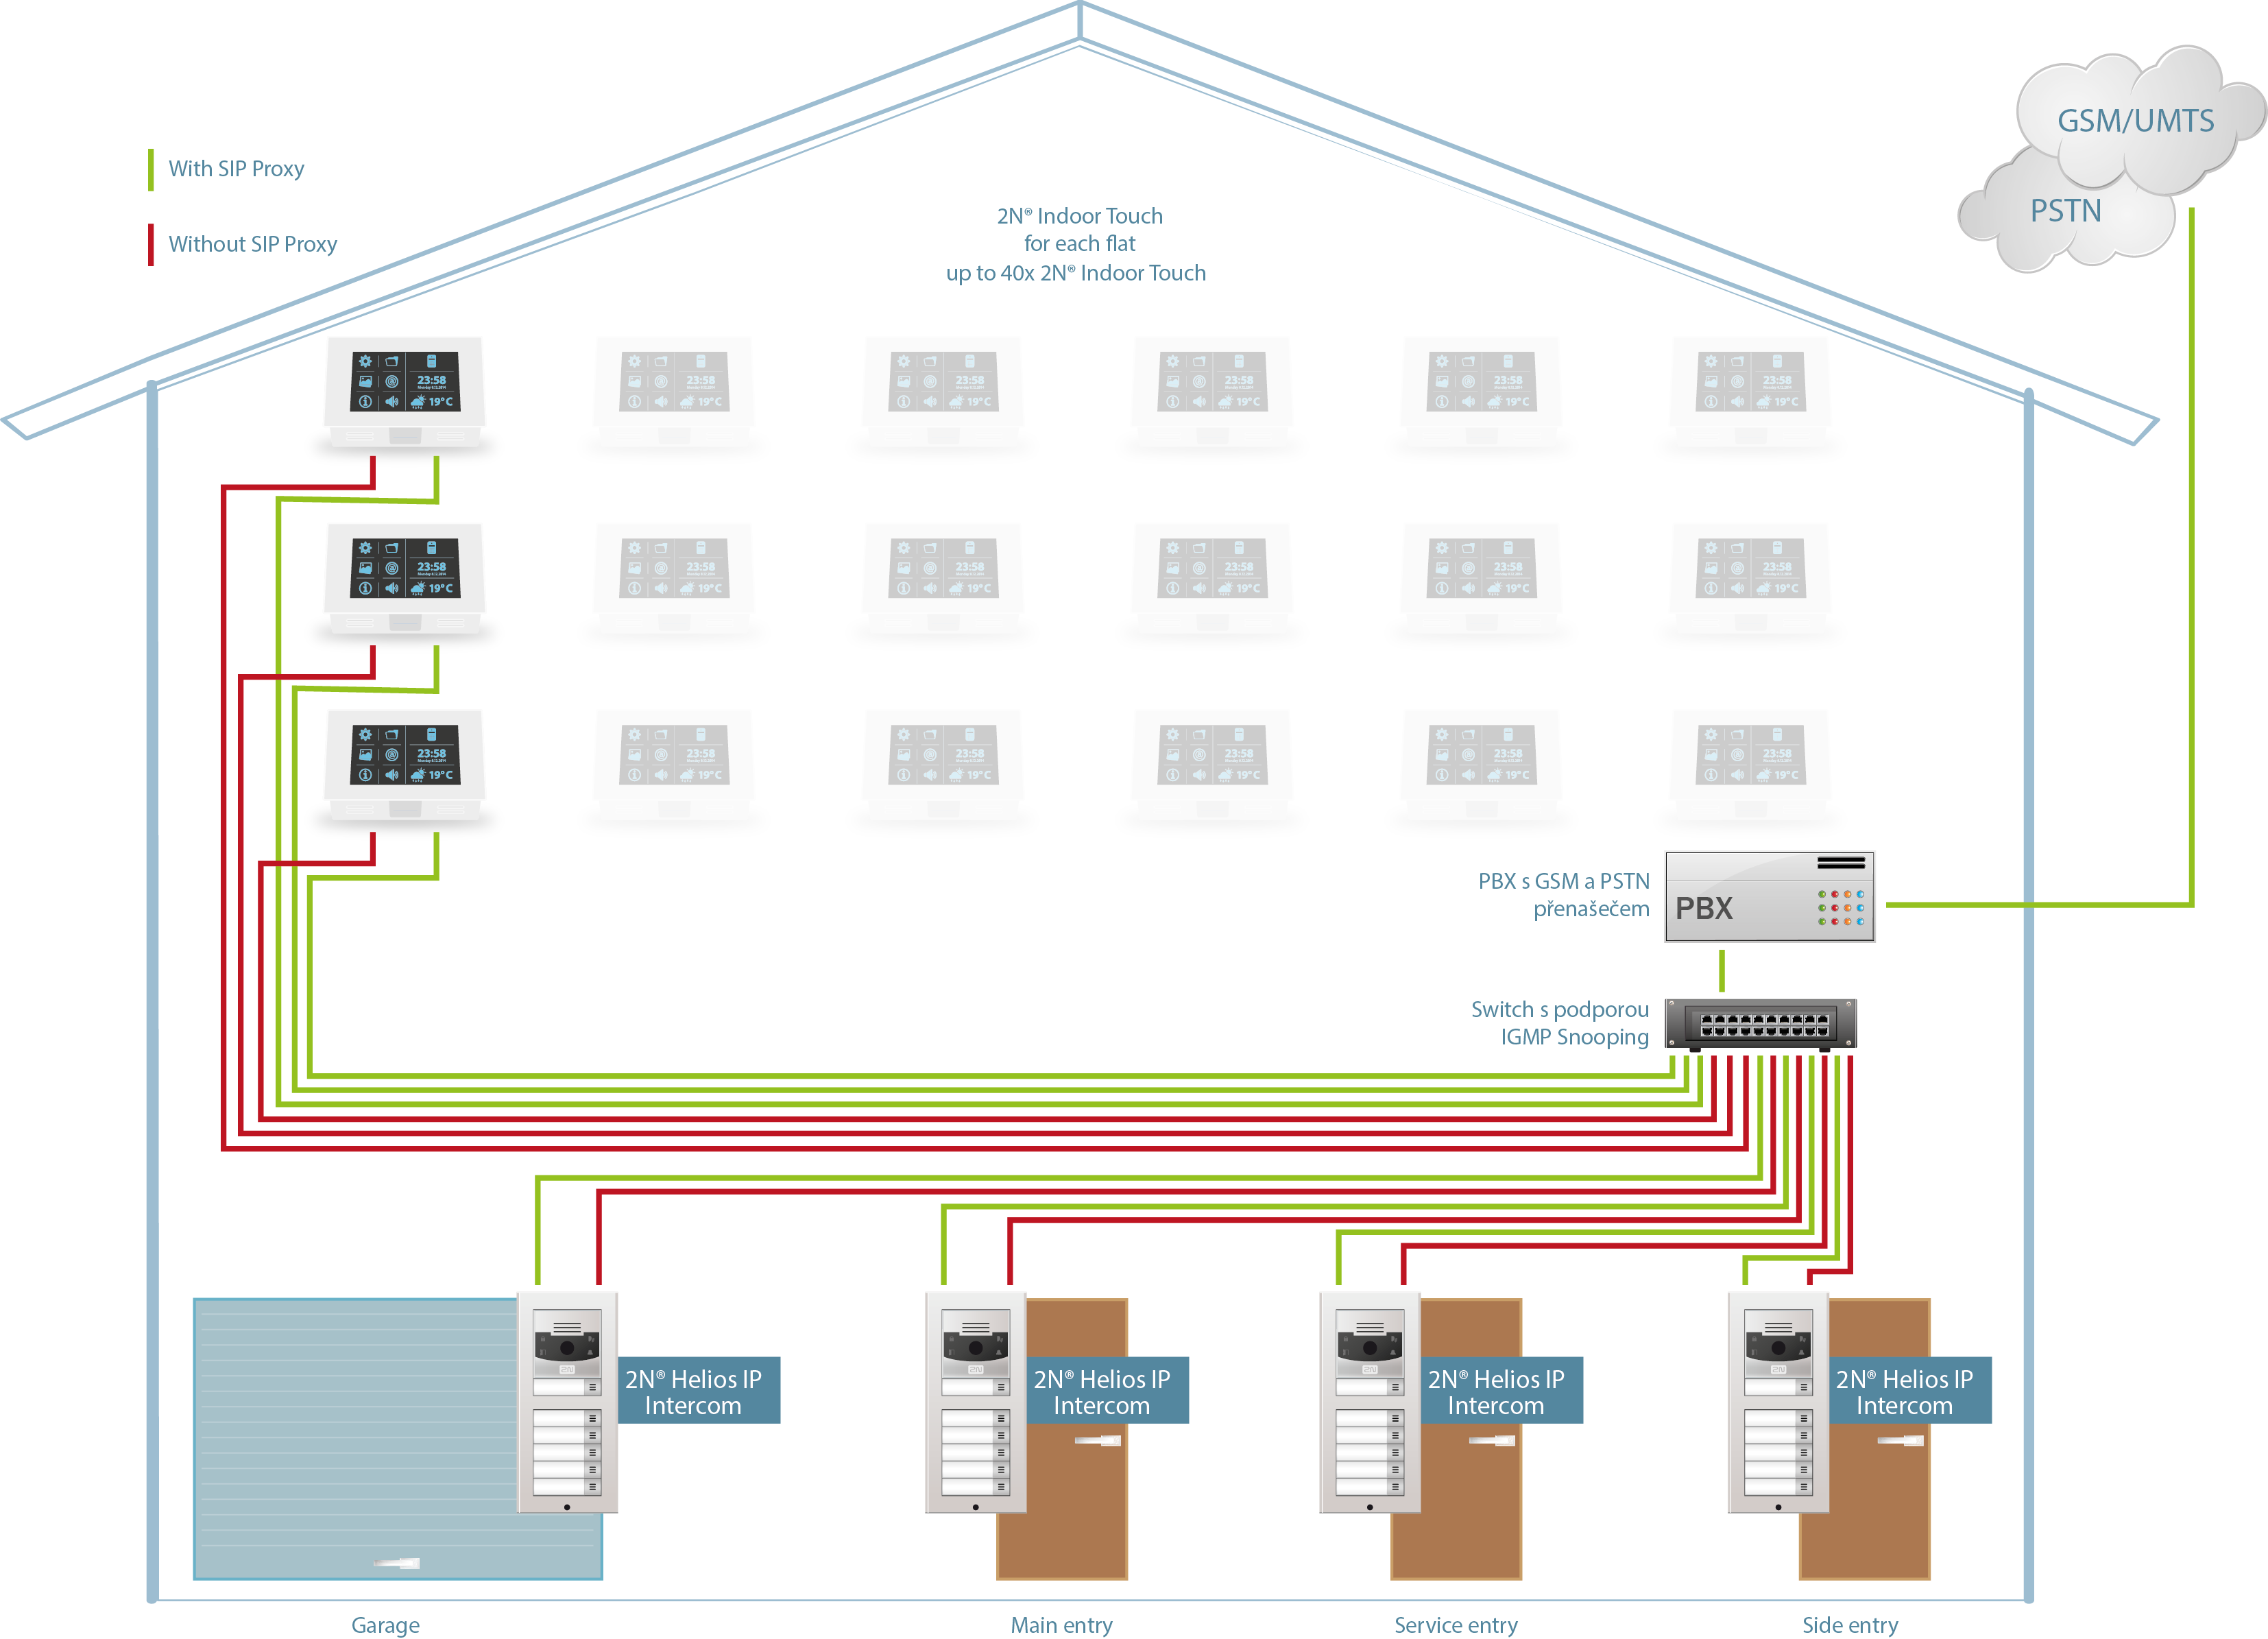 Network requirements - What LAN/Wi-Fi infrastructure do I need